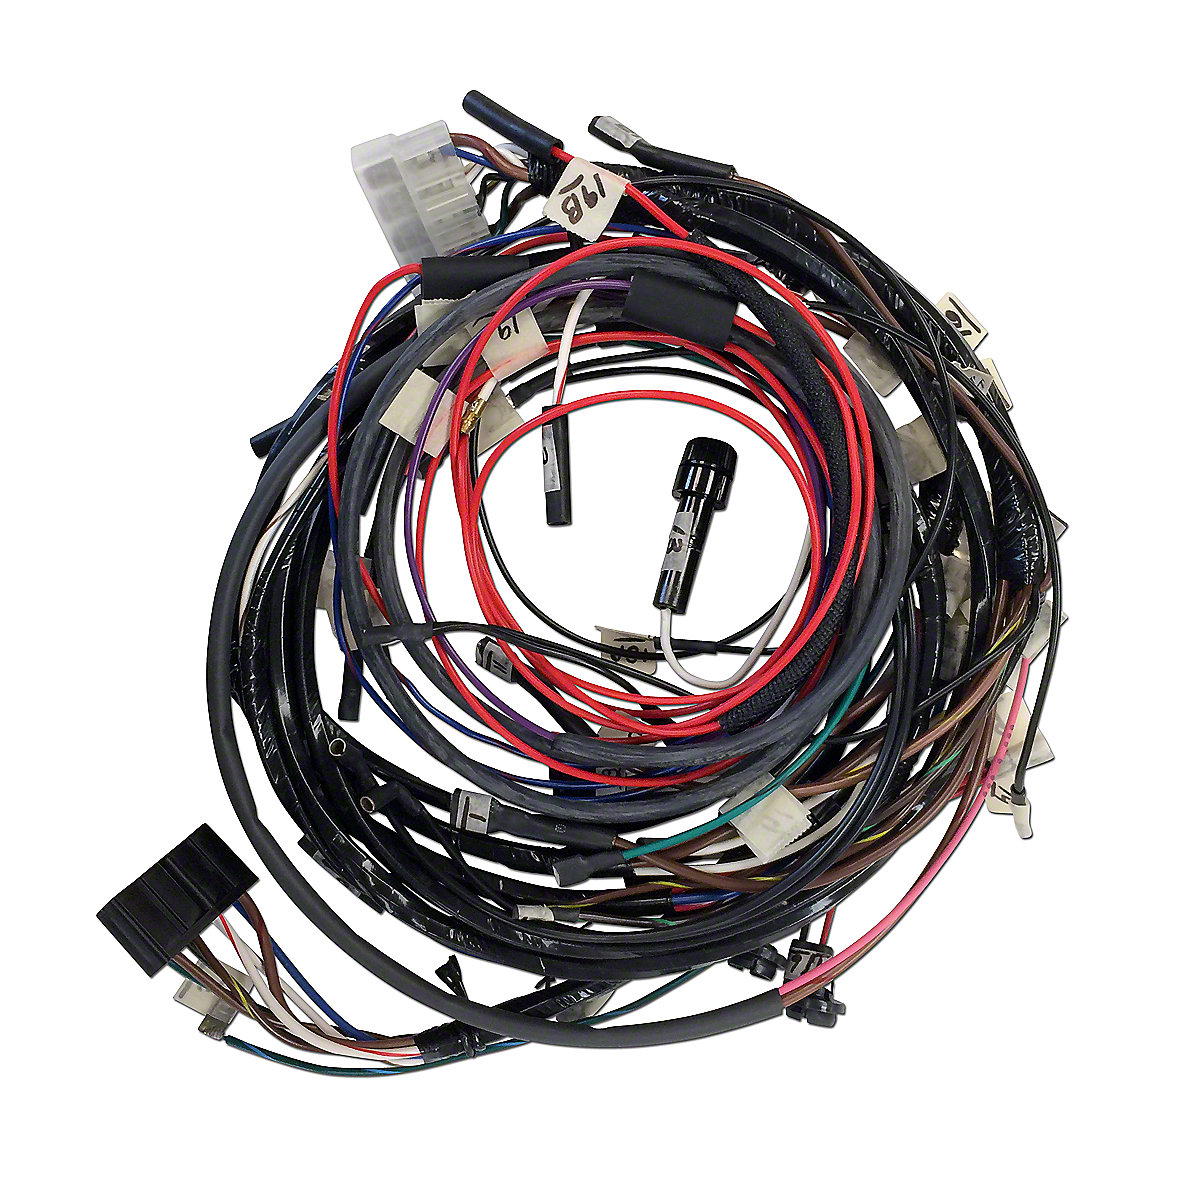 quality wiring harness kit fds3371 rh steinertractor com Wiring Harness Connectors Wiring Harness Connectors